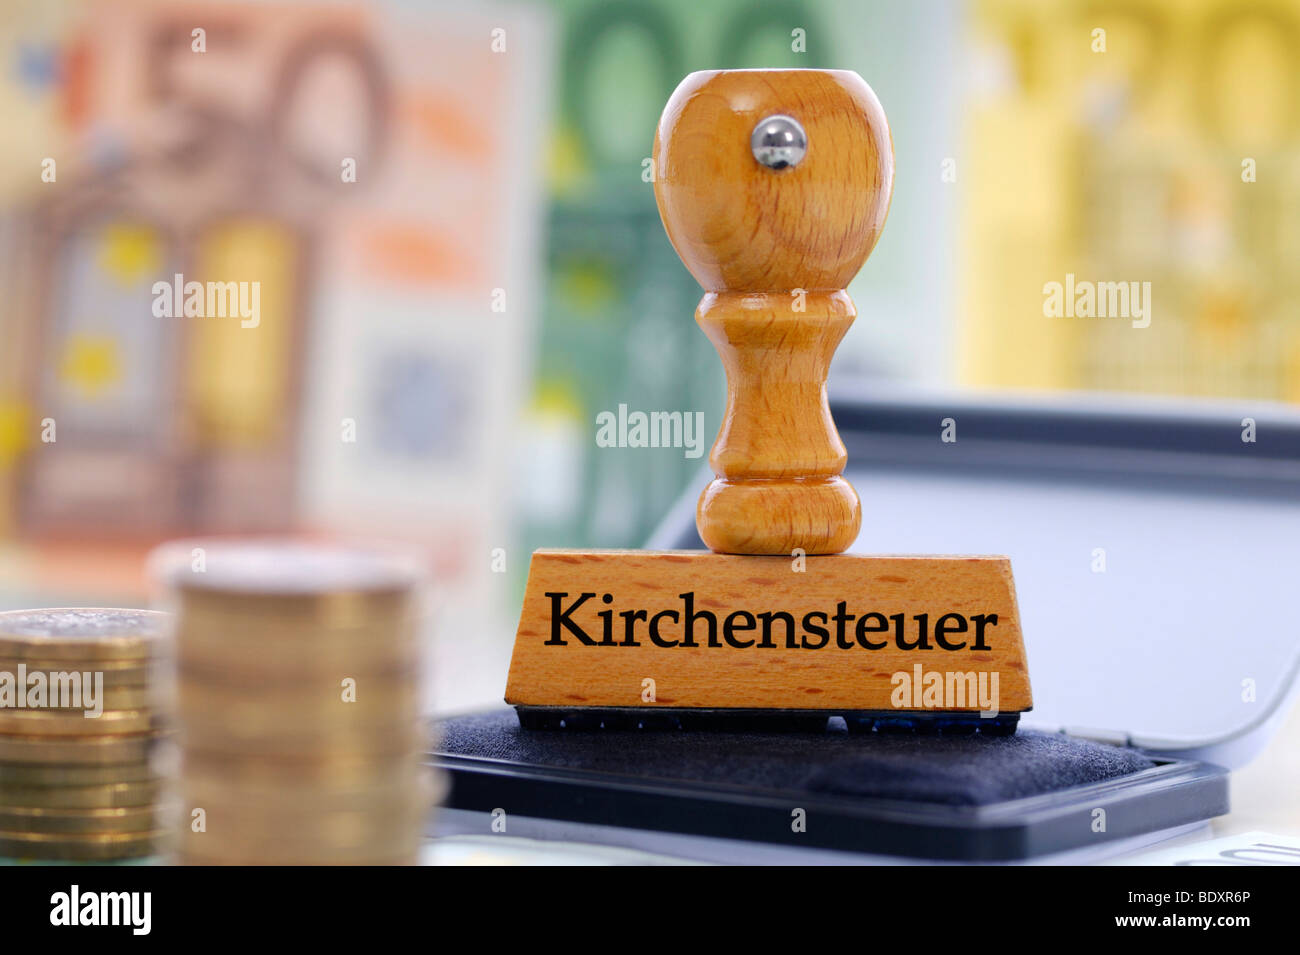 Stamp labelled 'Kirchensteuer', German for 'church tax' - Stock Image